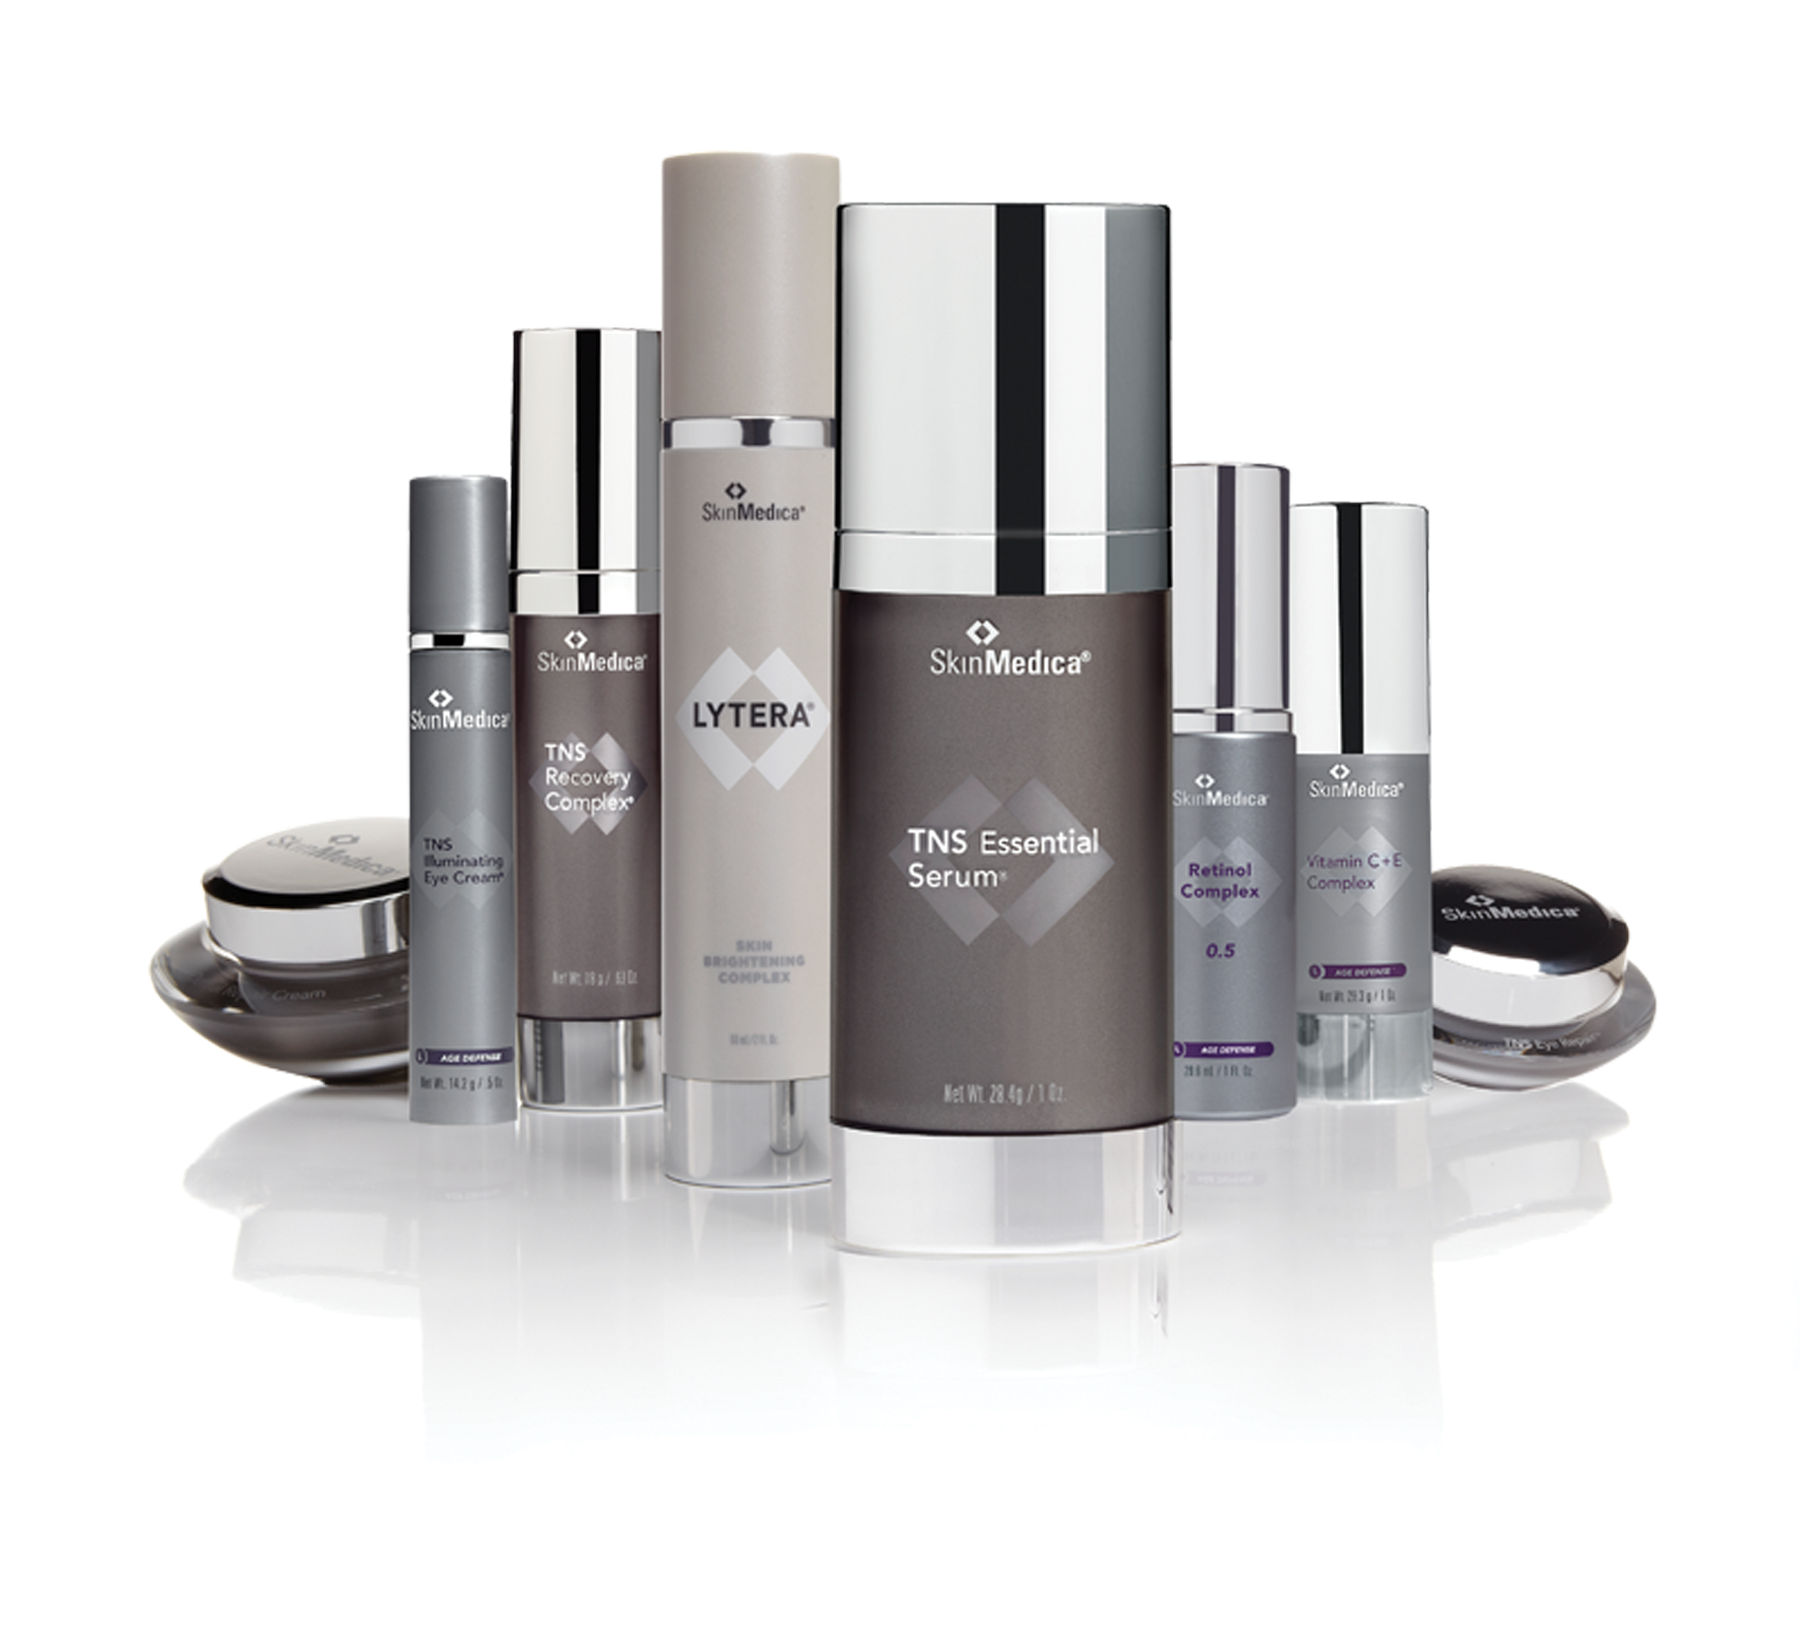 Skinmedica Product Family